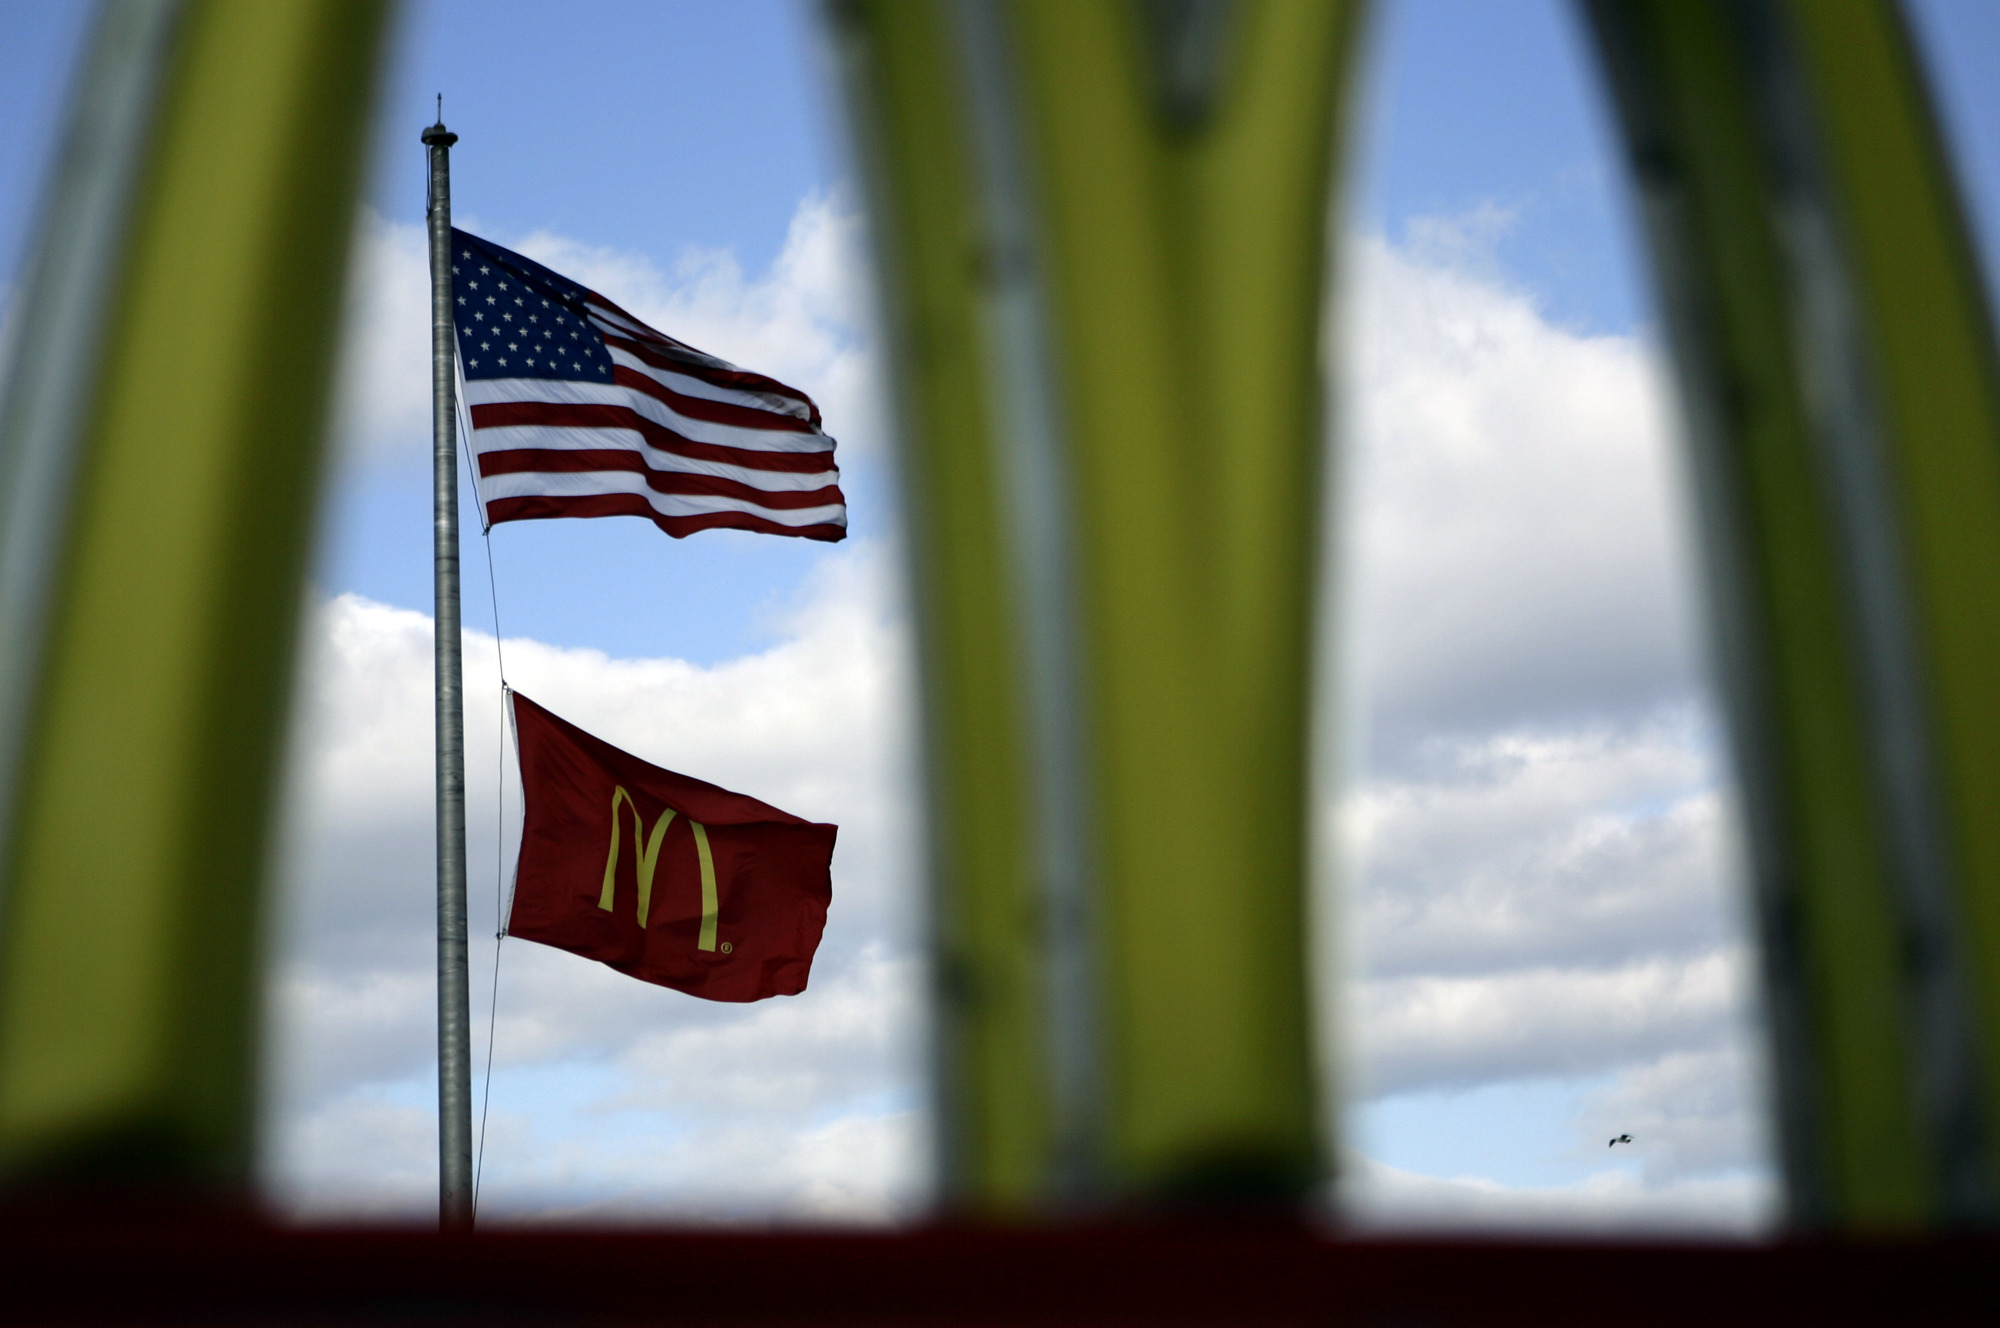 A McDonald's flag and a logo are seen outside one of the company's restaurants on Chicago's near North Side, Thursday, Oct. 12, 2006. Newly released data from QSR magazine showed which American fast-food chains were most successful in 2019.